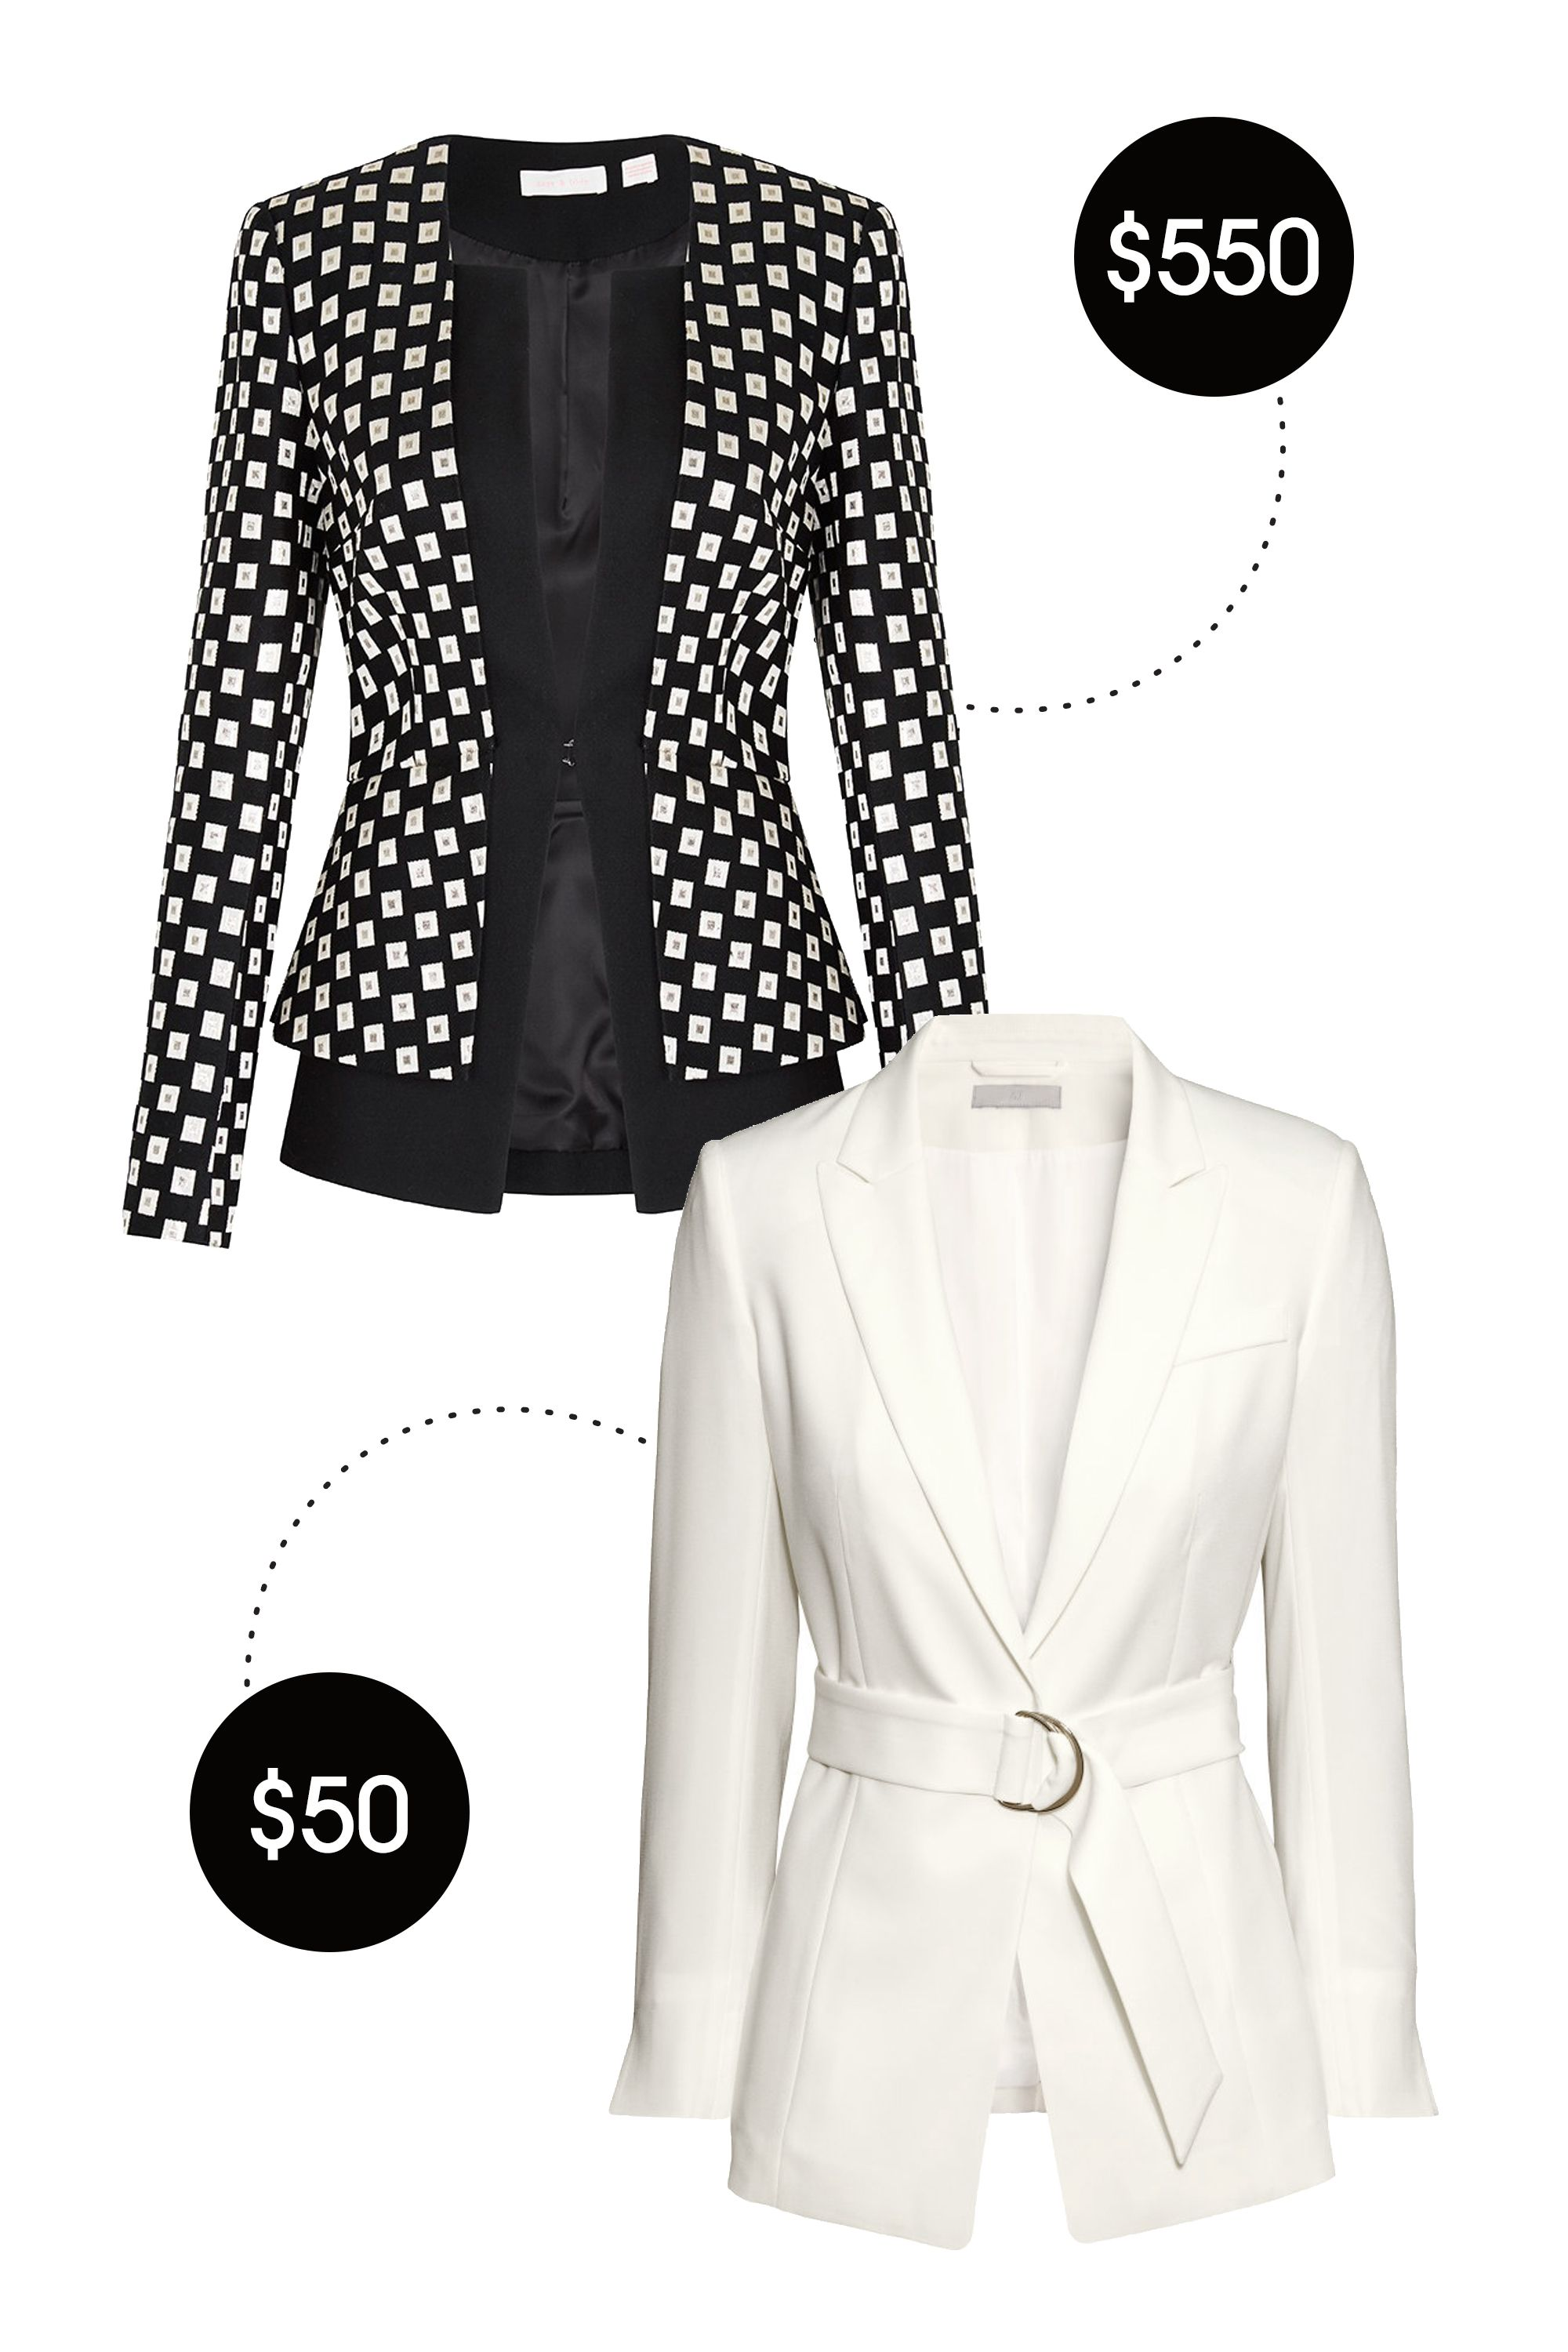 "&lt;p&gt;Sass &amp;amp; Bide Contrasts Voyage Fitted Tailored Blazer, $550; &lt;a href=""https://www.sassandbide.com/us/products/contrasts-voyage-black-gold""&gt;sassandbide.com&lt;/a&gt;&lt;/p&gt; &lt;p&gt;H&amp;amp;M Jacket with Belt, $50; &lt;a href=""http://www.hm.com/us/product/89190?article=89190-C""&gt;hm.com&lt;/a&gt;&lt;/p&gt; &lt;p&gt; <!--EndFragment-->&lt;/p&gt;"